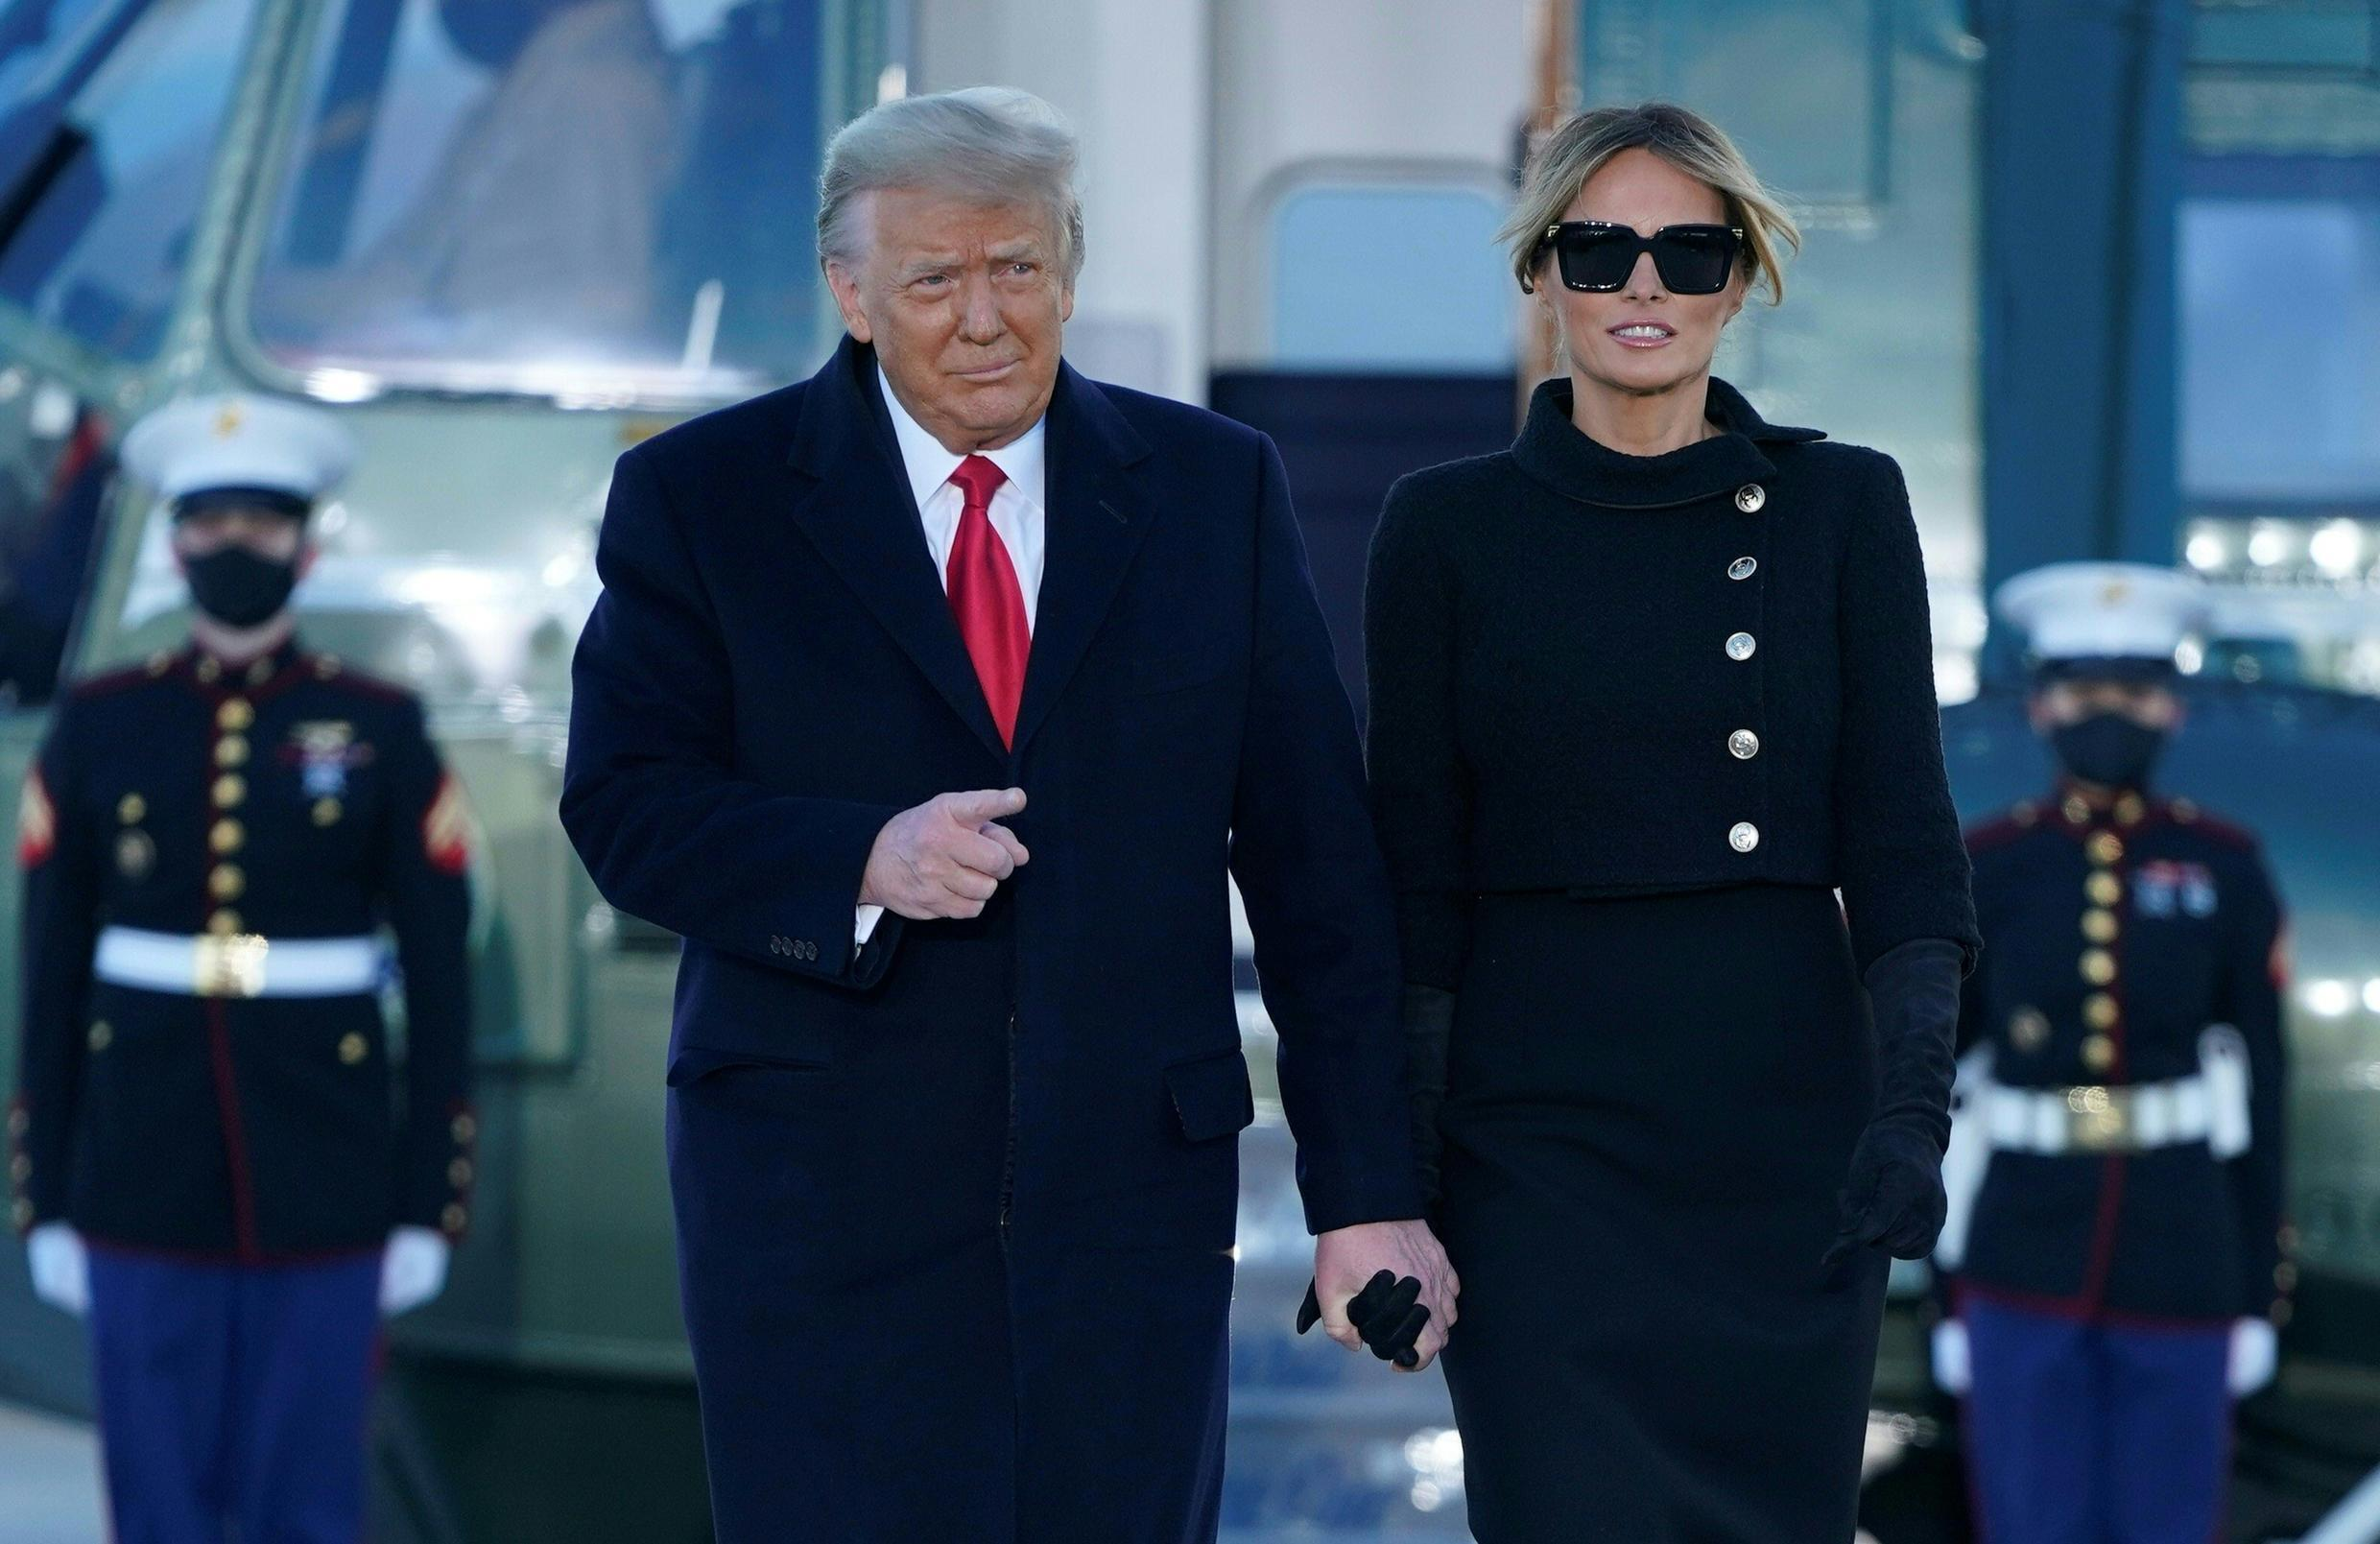 Former US president Donald Trump and first lady Melania Trump are seen at Joint Base Andrews in Maryland on January 20, 2021, after leaving the White House